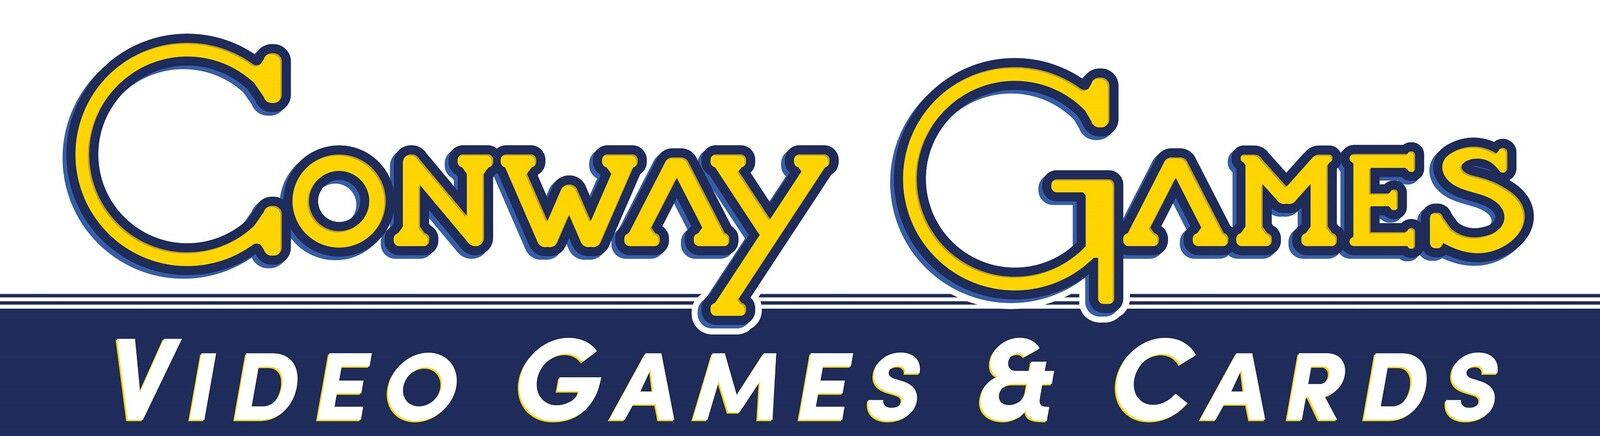 Conway_Games